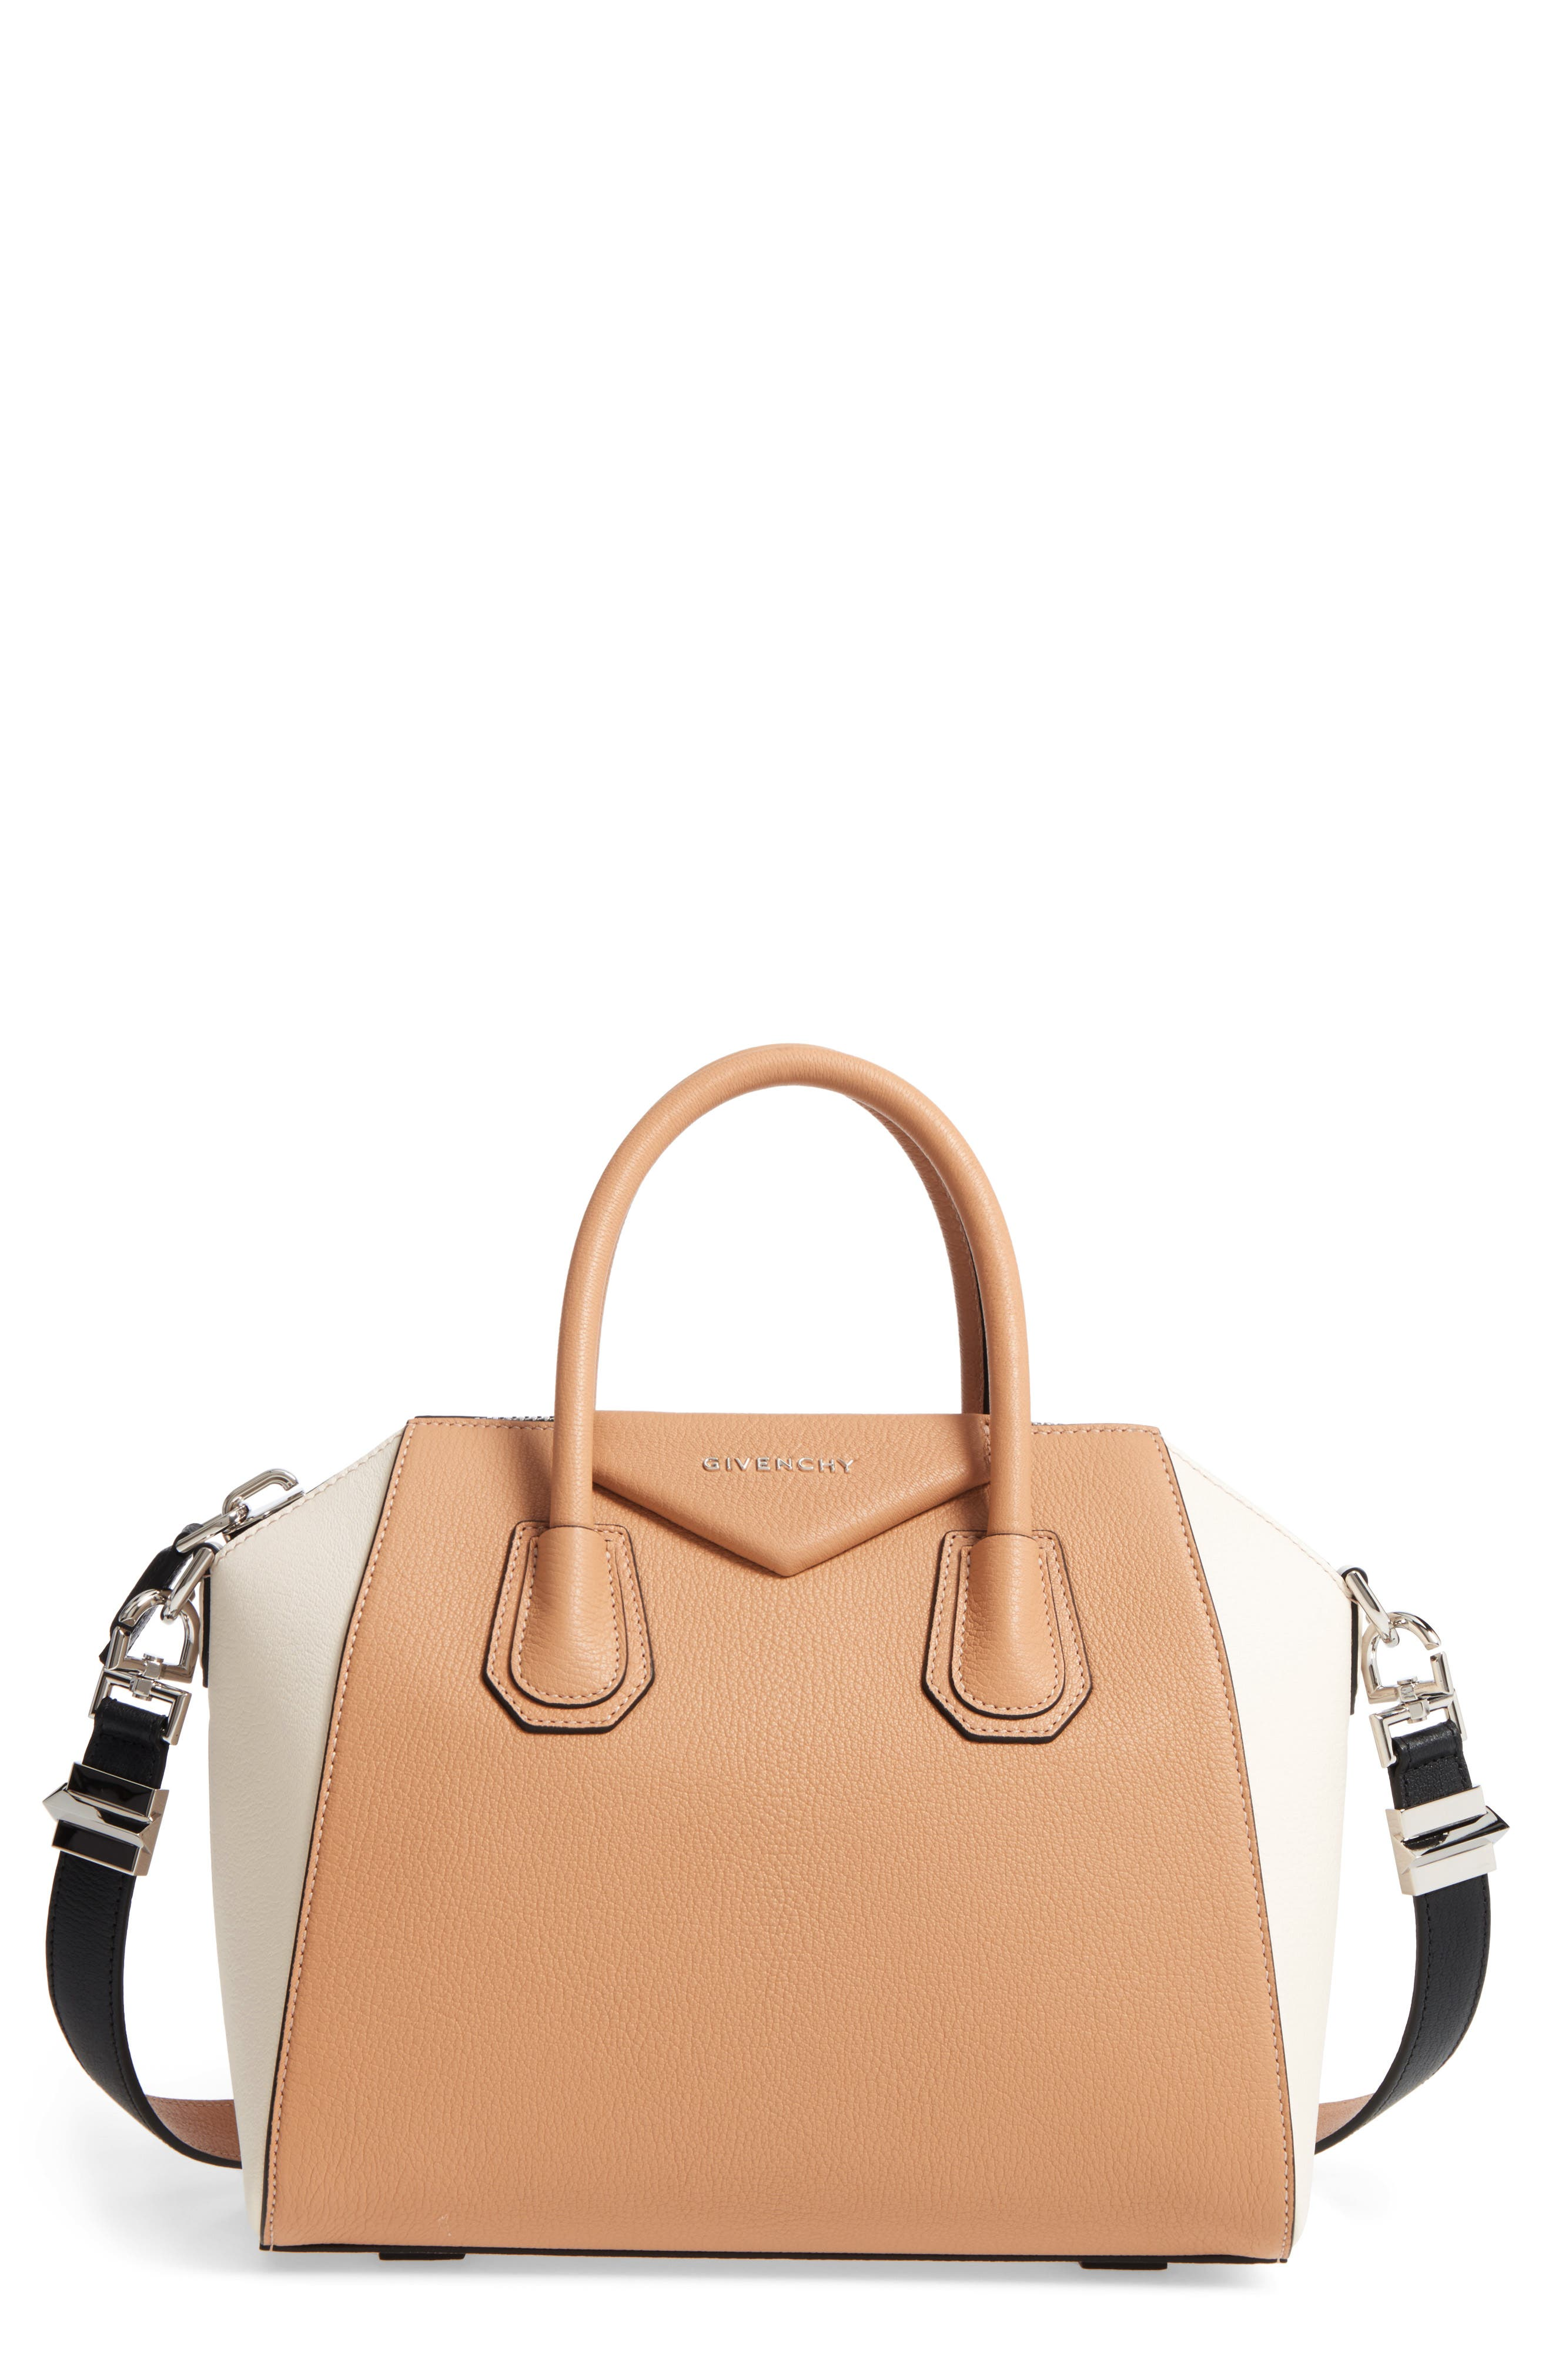 Givenchy Small Antigona Bicolor Sugar Leather Satchel